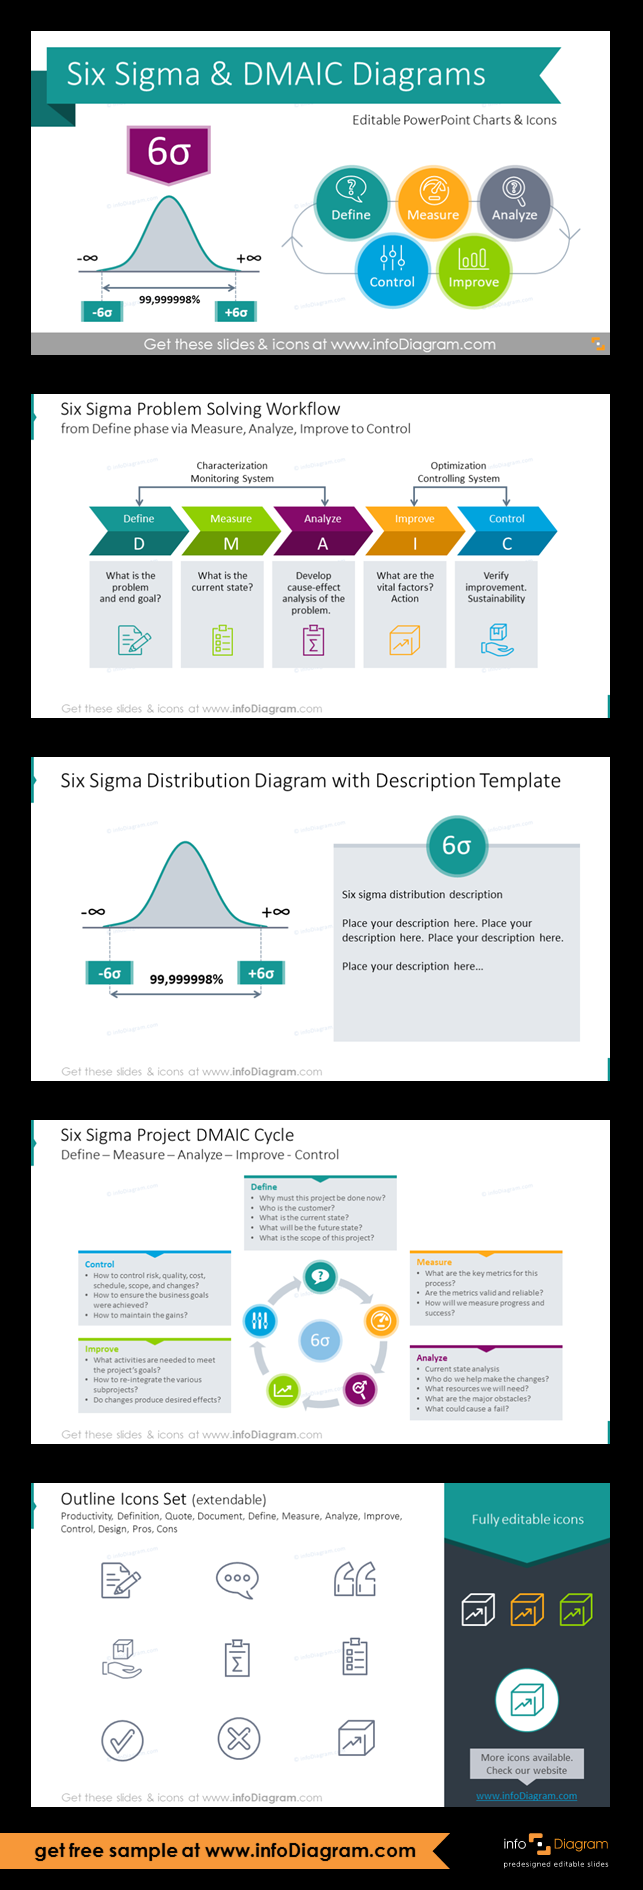 powerpoint template for six sigma training and presentation materials six sigma problem solving workflow six sigma distribution diagram with description  [ 643 x 1890 Pixel ]